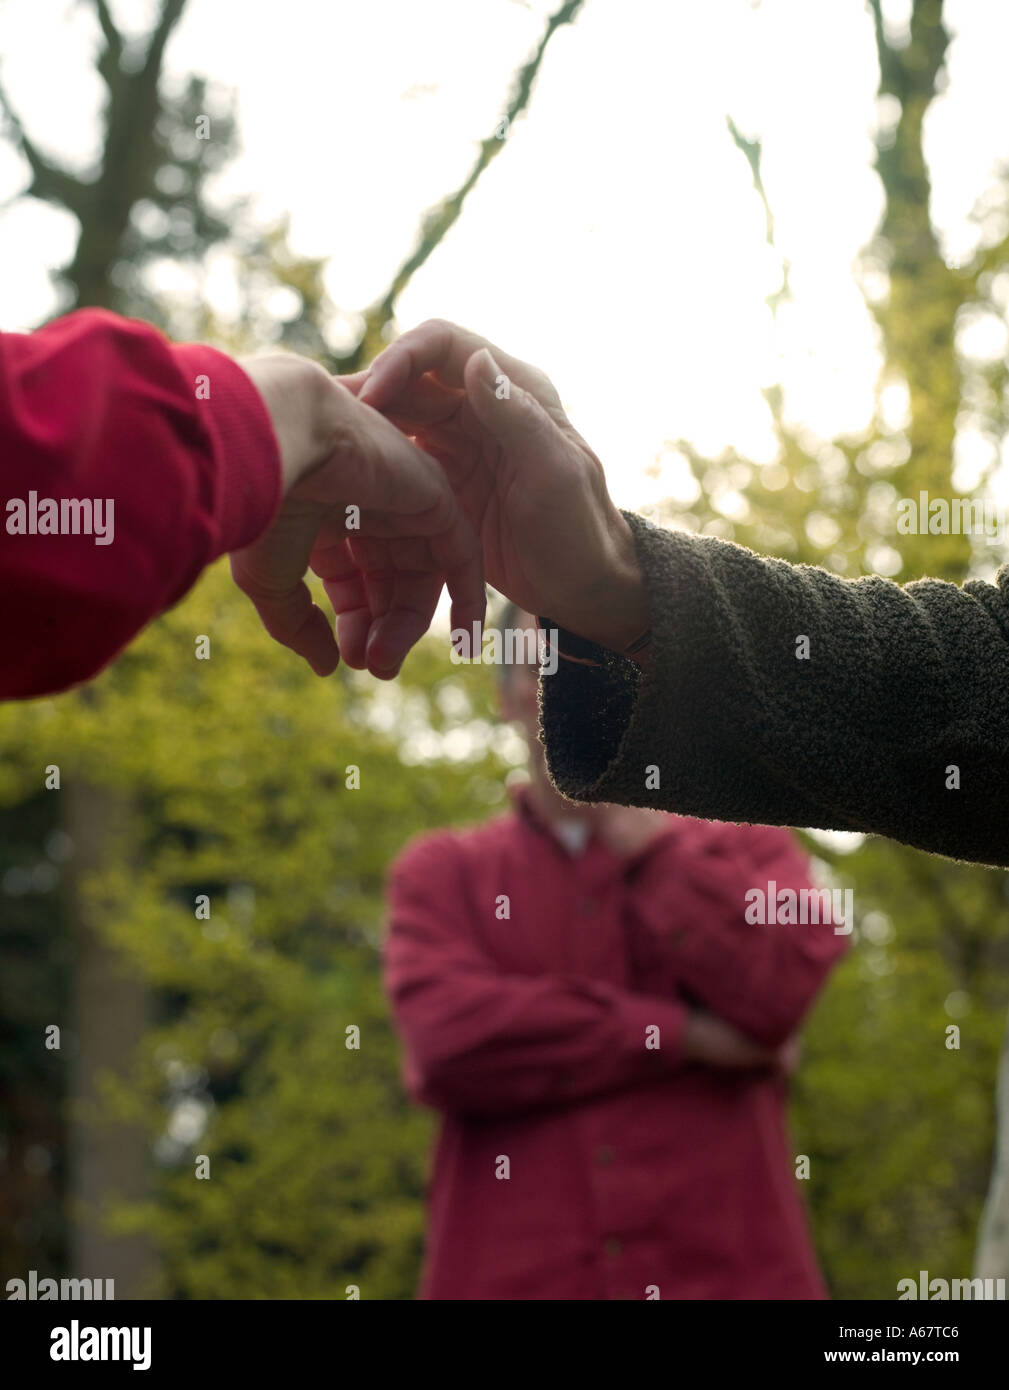 two people touching hands in woodland setting close up - Stock Image